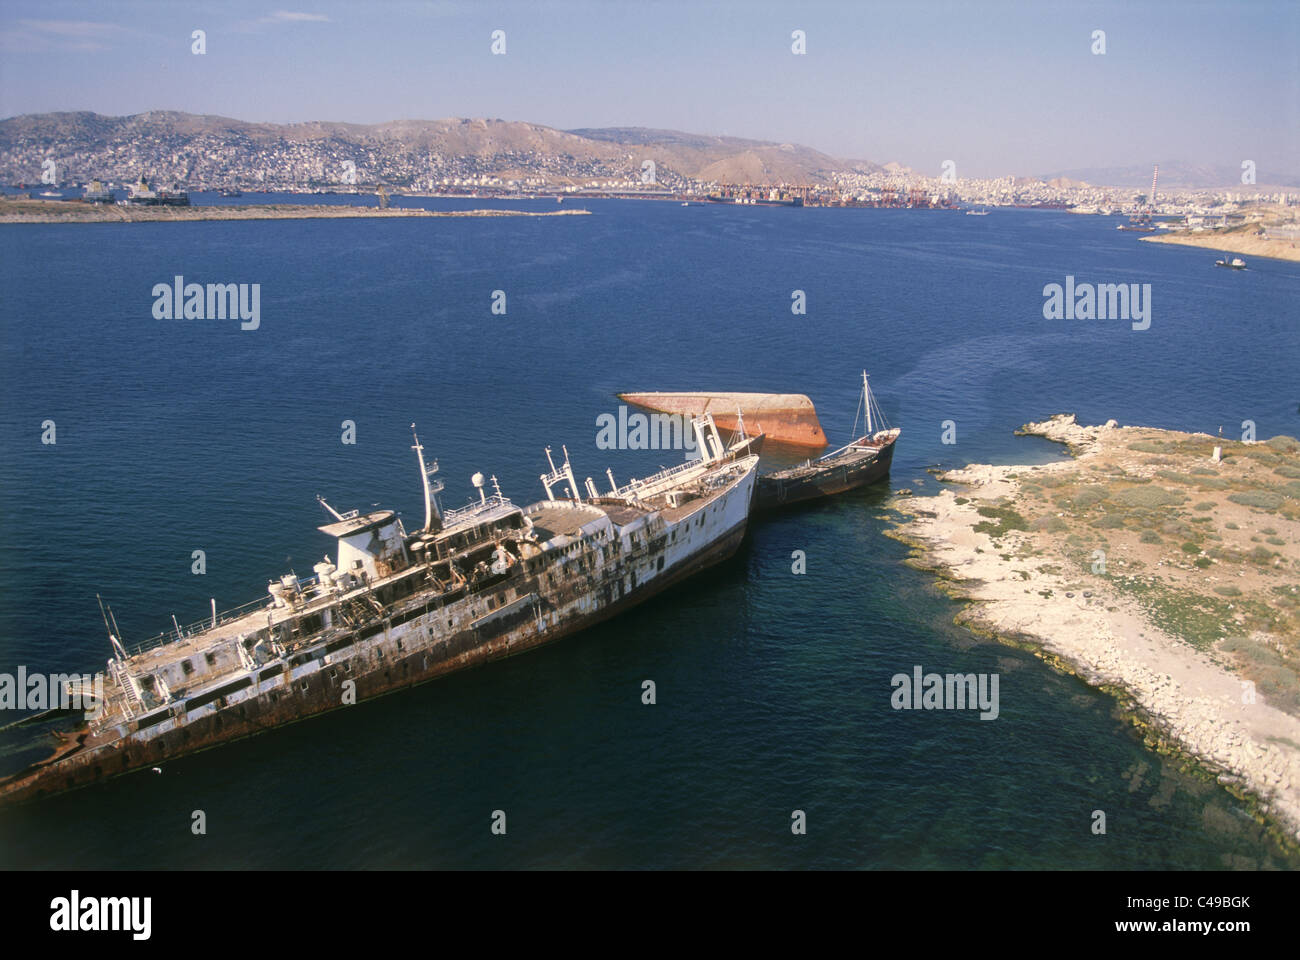 Aerial photograph of sunk ships in the Salamina bay in Greece - Stock Image